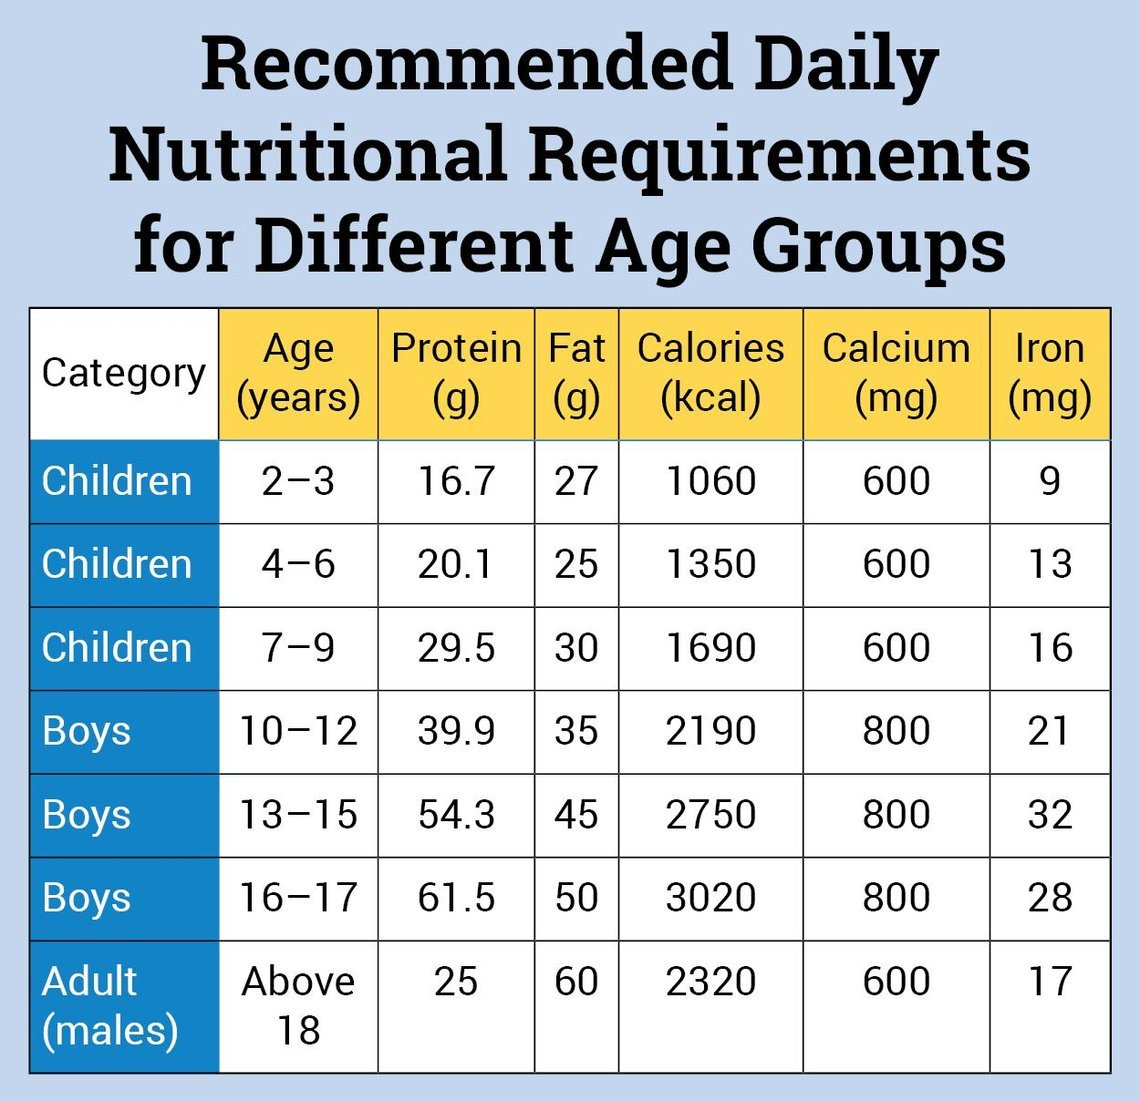 Calorie Requirement for Boys of Different Age Groups